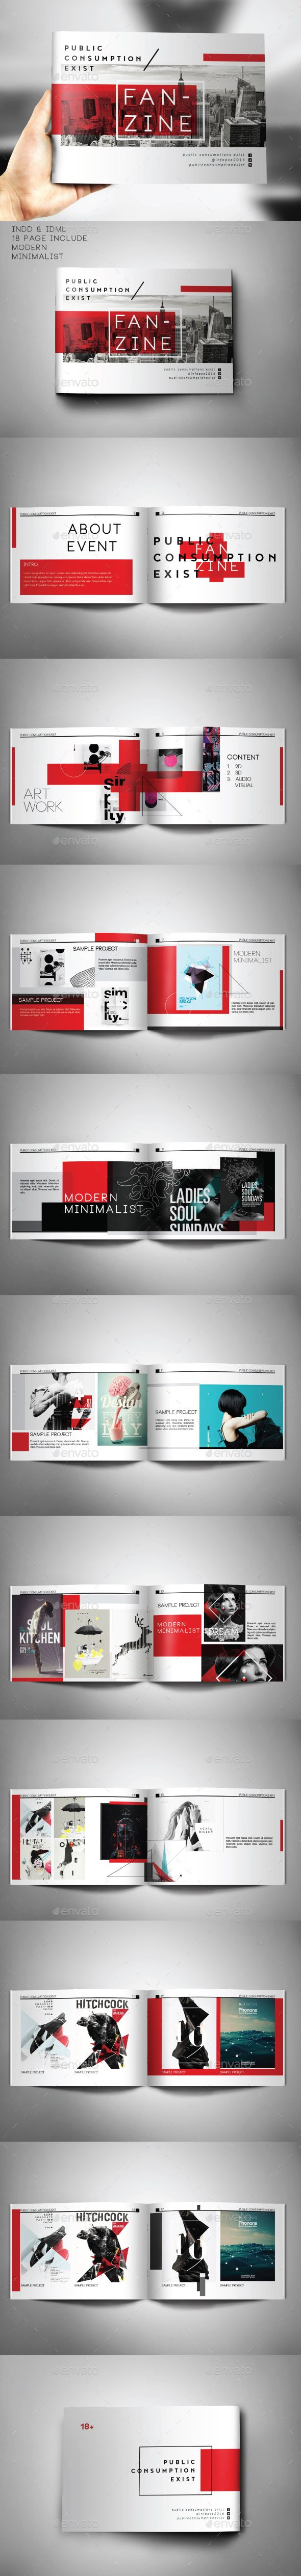 Portofolio Creative Artwork Template